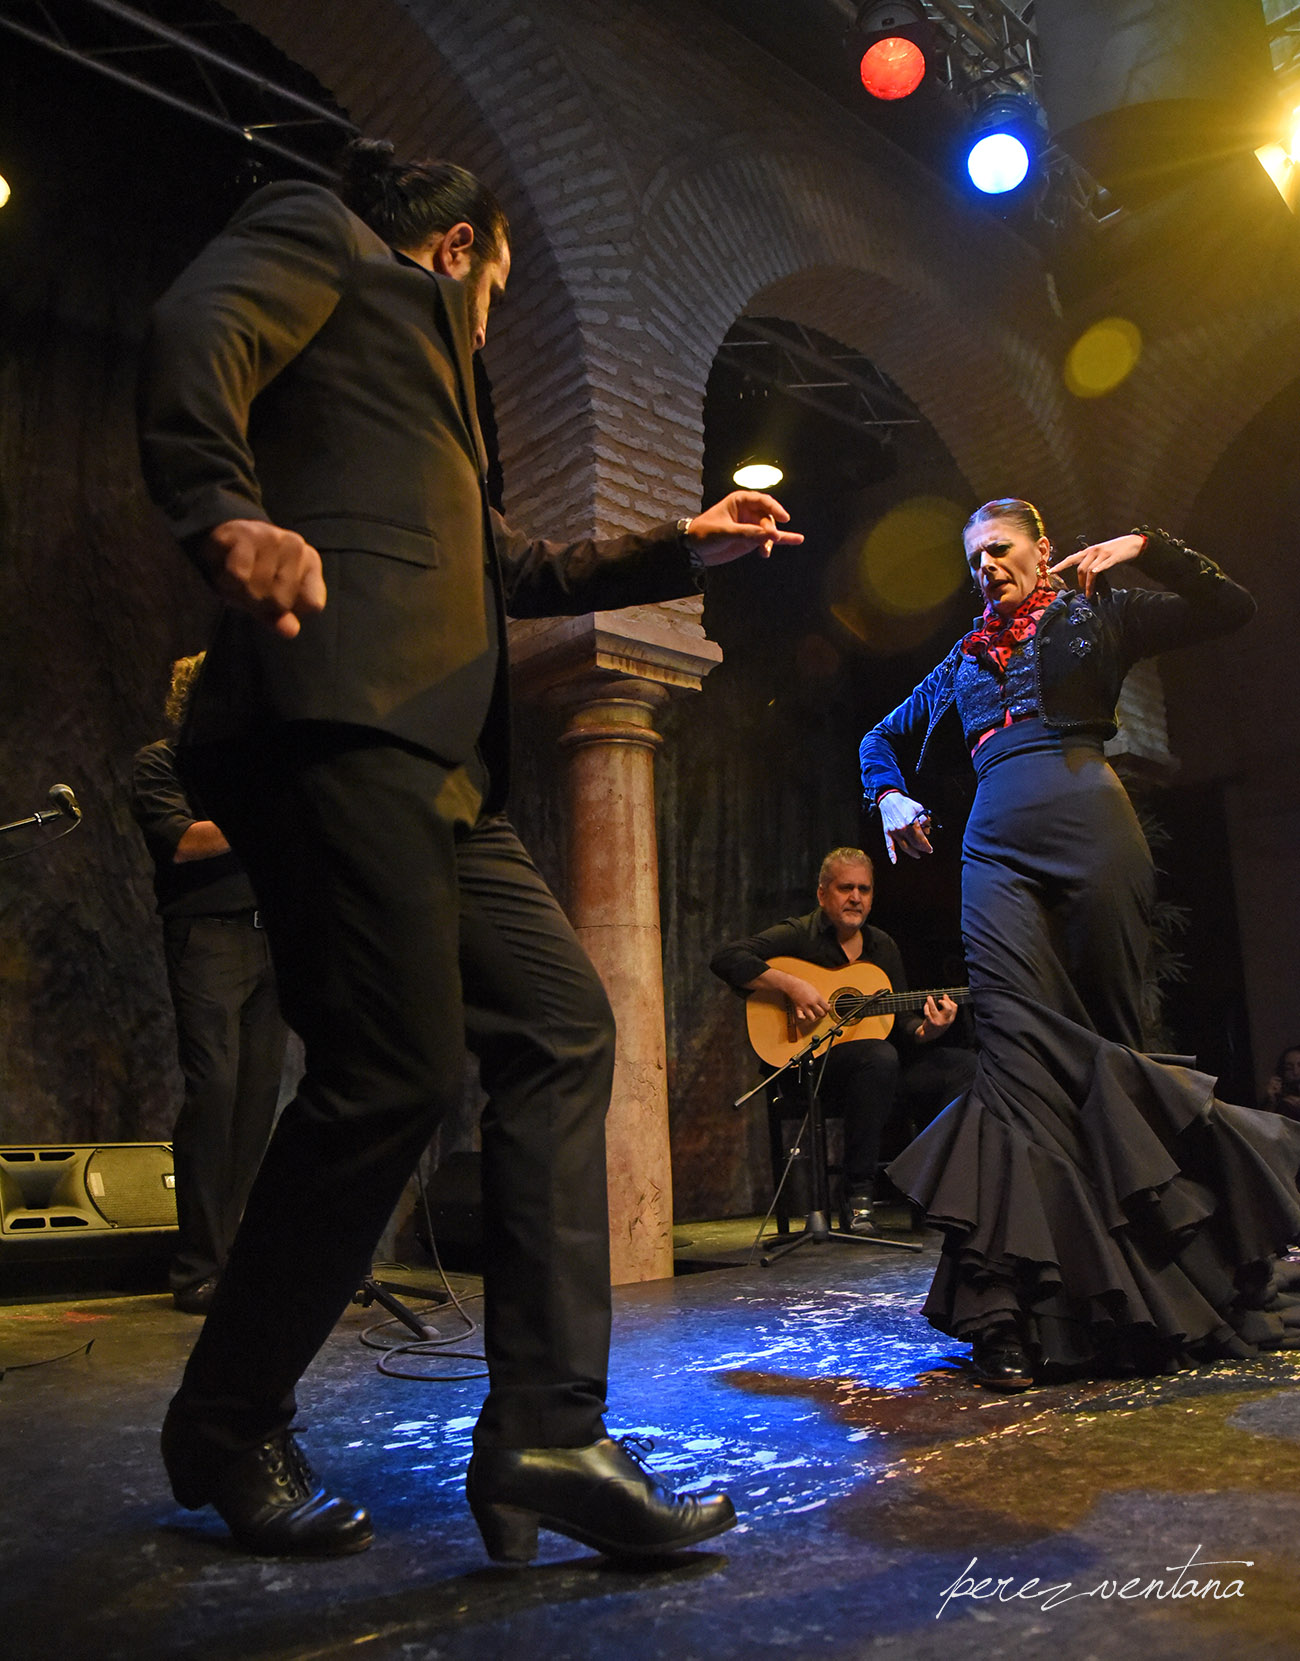 Los bailaores Rocío Alcaide y El Choro. Presentación de la alianza «Authentic Flamenco Quality Establishments» en el Museo del Baile Flamenco. 8 octubre 2019. Foto: perezventana